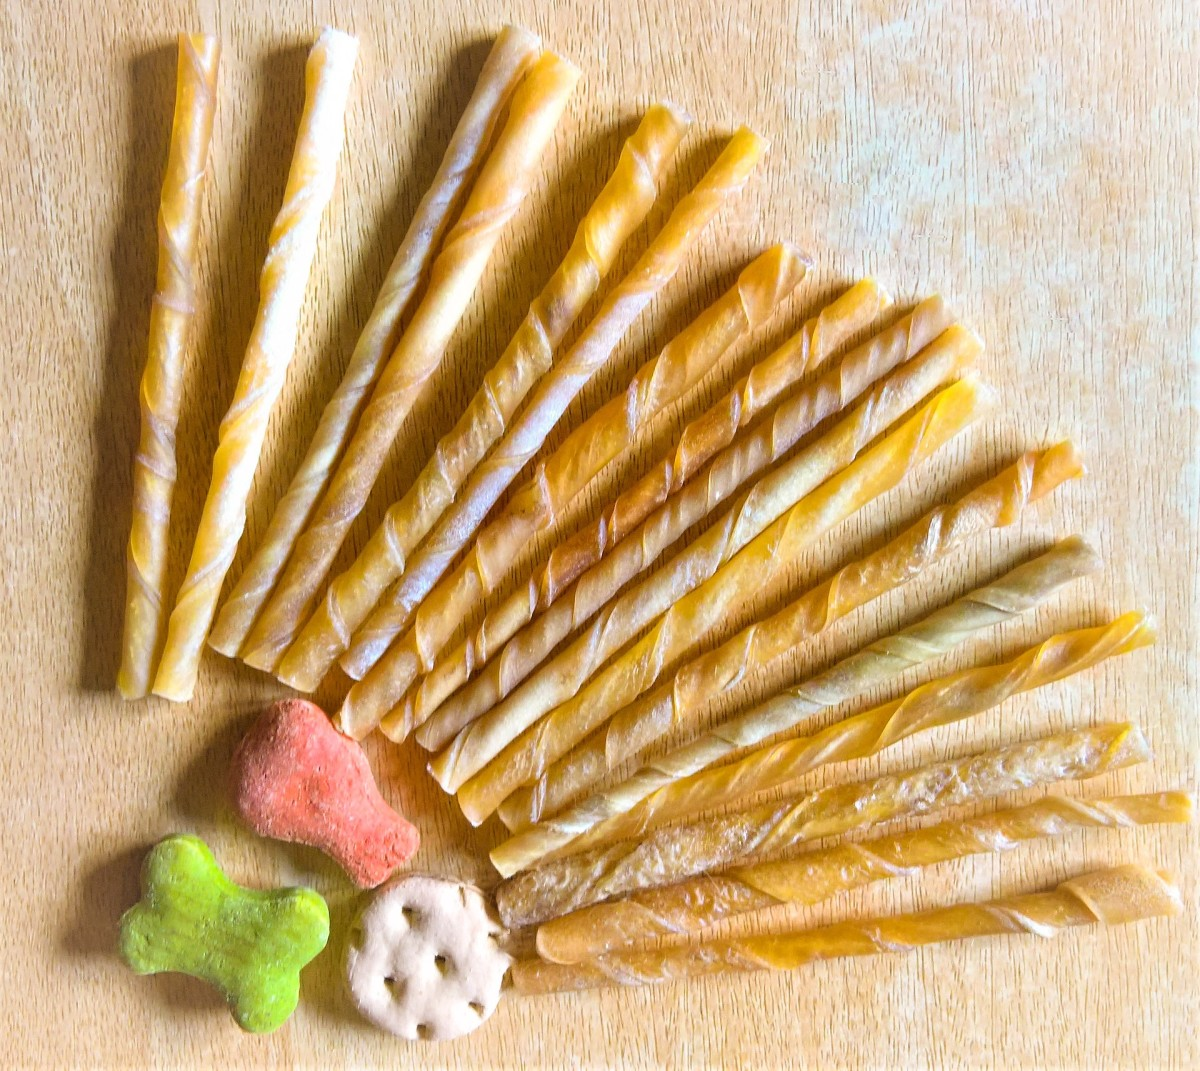 """Many vets advise against giving your dog bones because they may splinter and damage gums or cause choking. Manufactured """"chewy sticks"""" and dog cookies, like those shown above, are a safer option"""